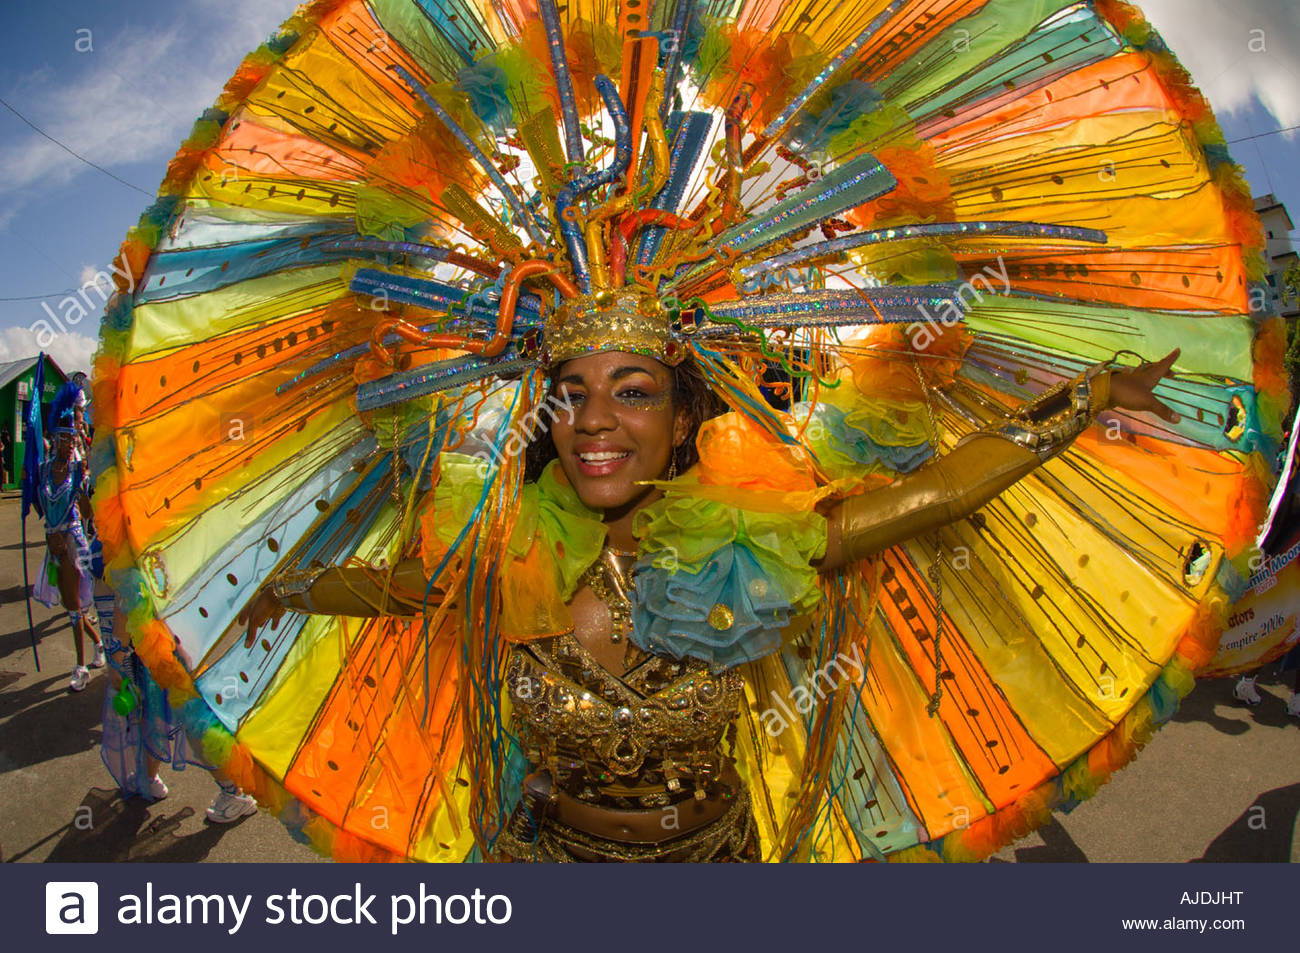 woman-wearing-ornate-carnival-costume-qu